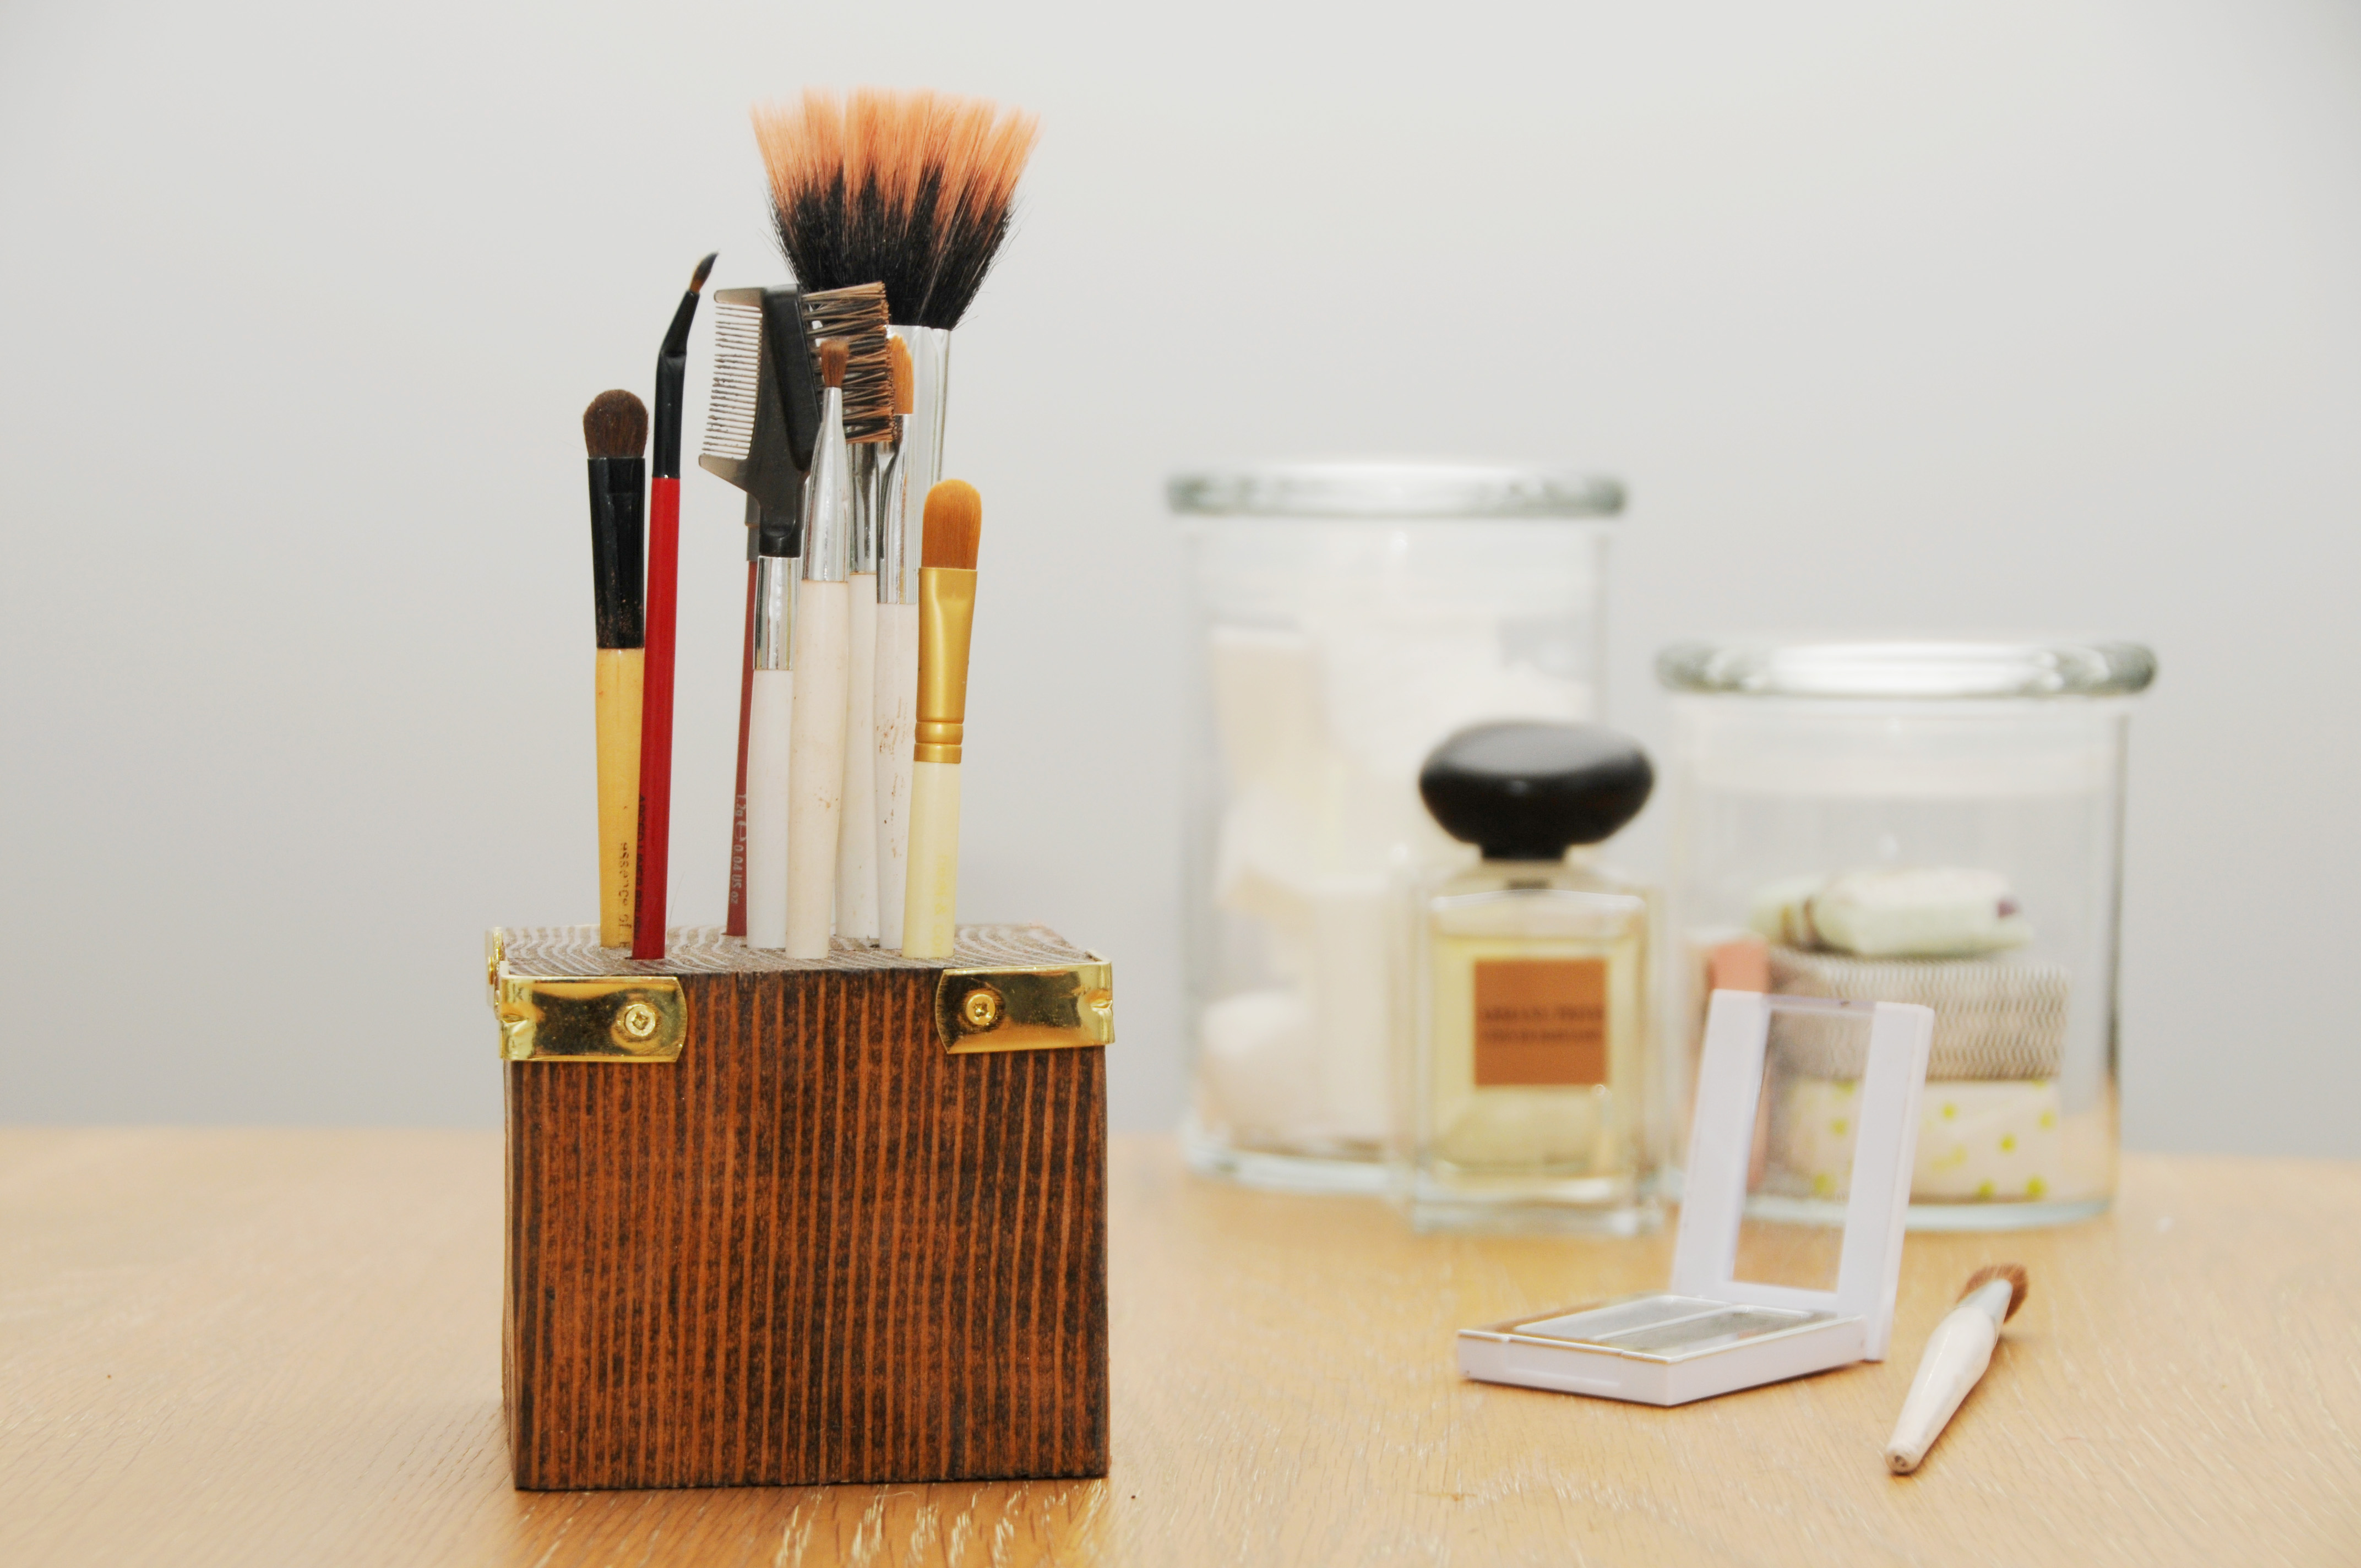 Try This at Home: Scrap Wood Make-up Brush Holder - Earnest Home co.